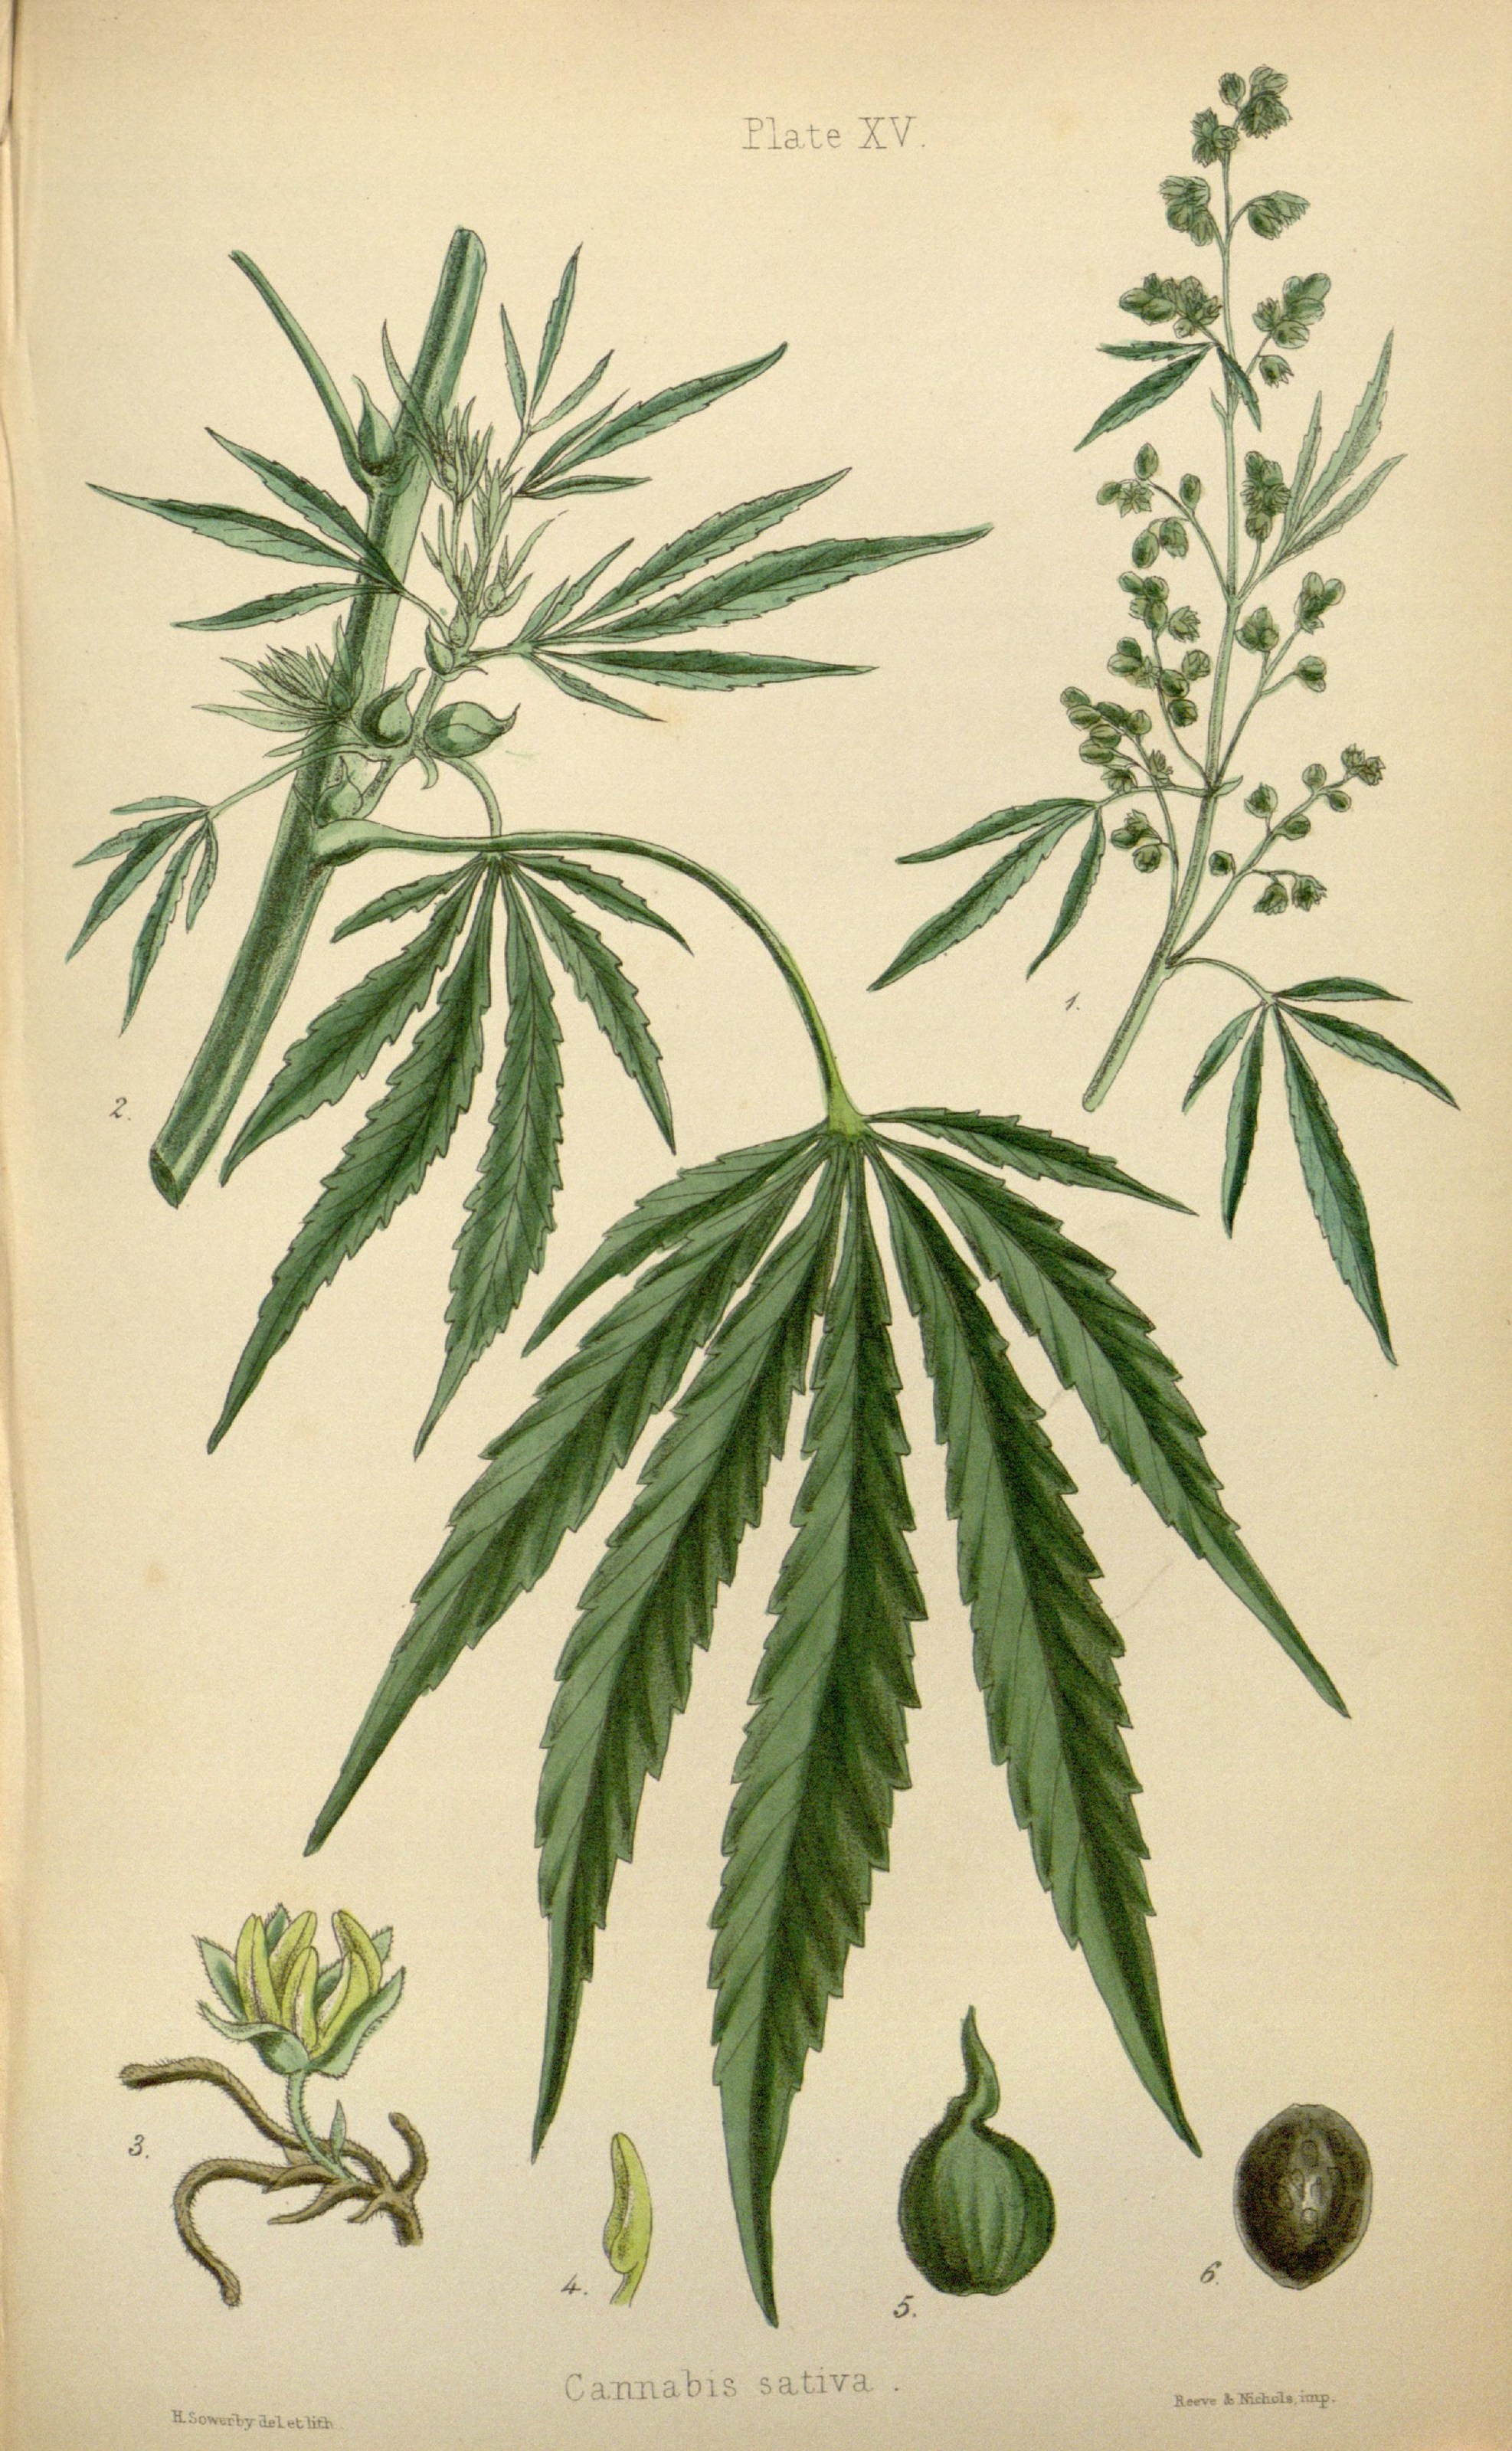 1551392879780_The_flora_homoeopathica_(8260577231).jpg